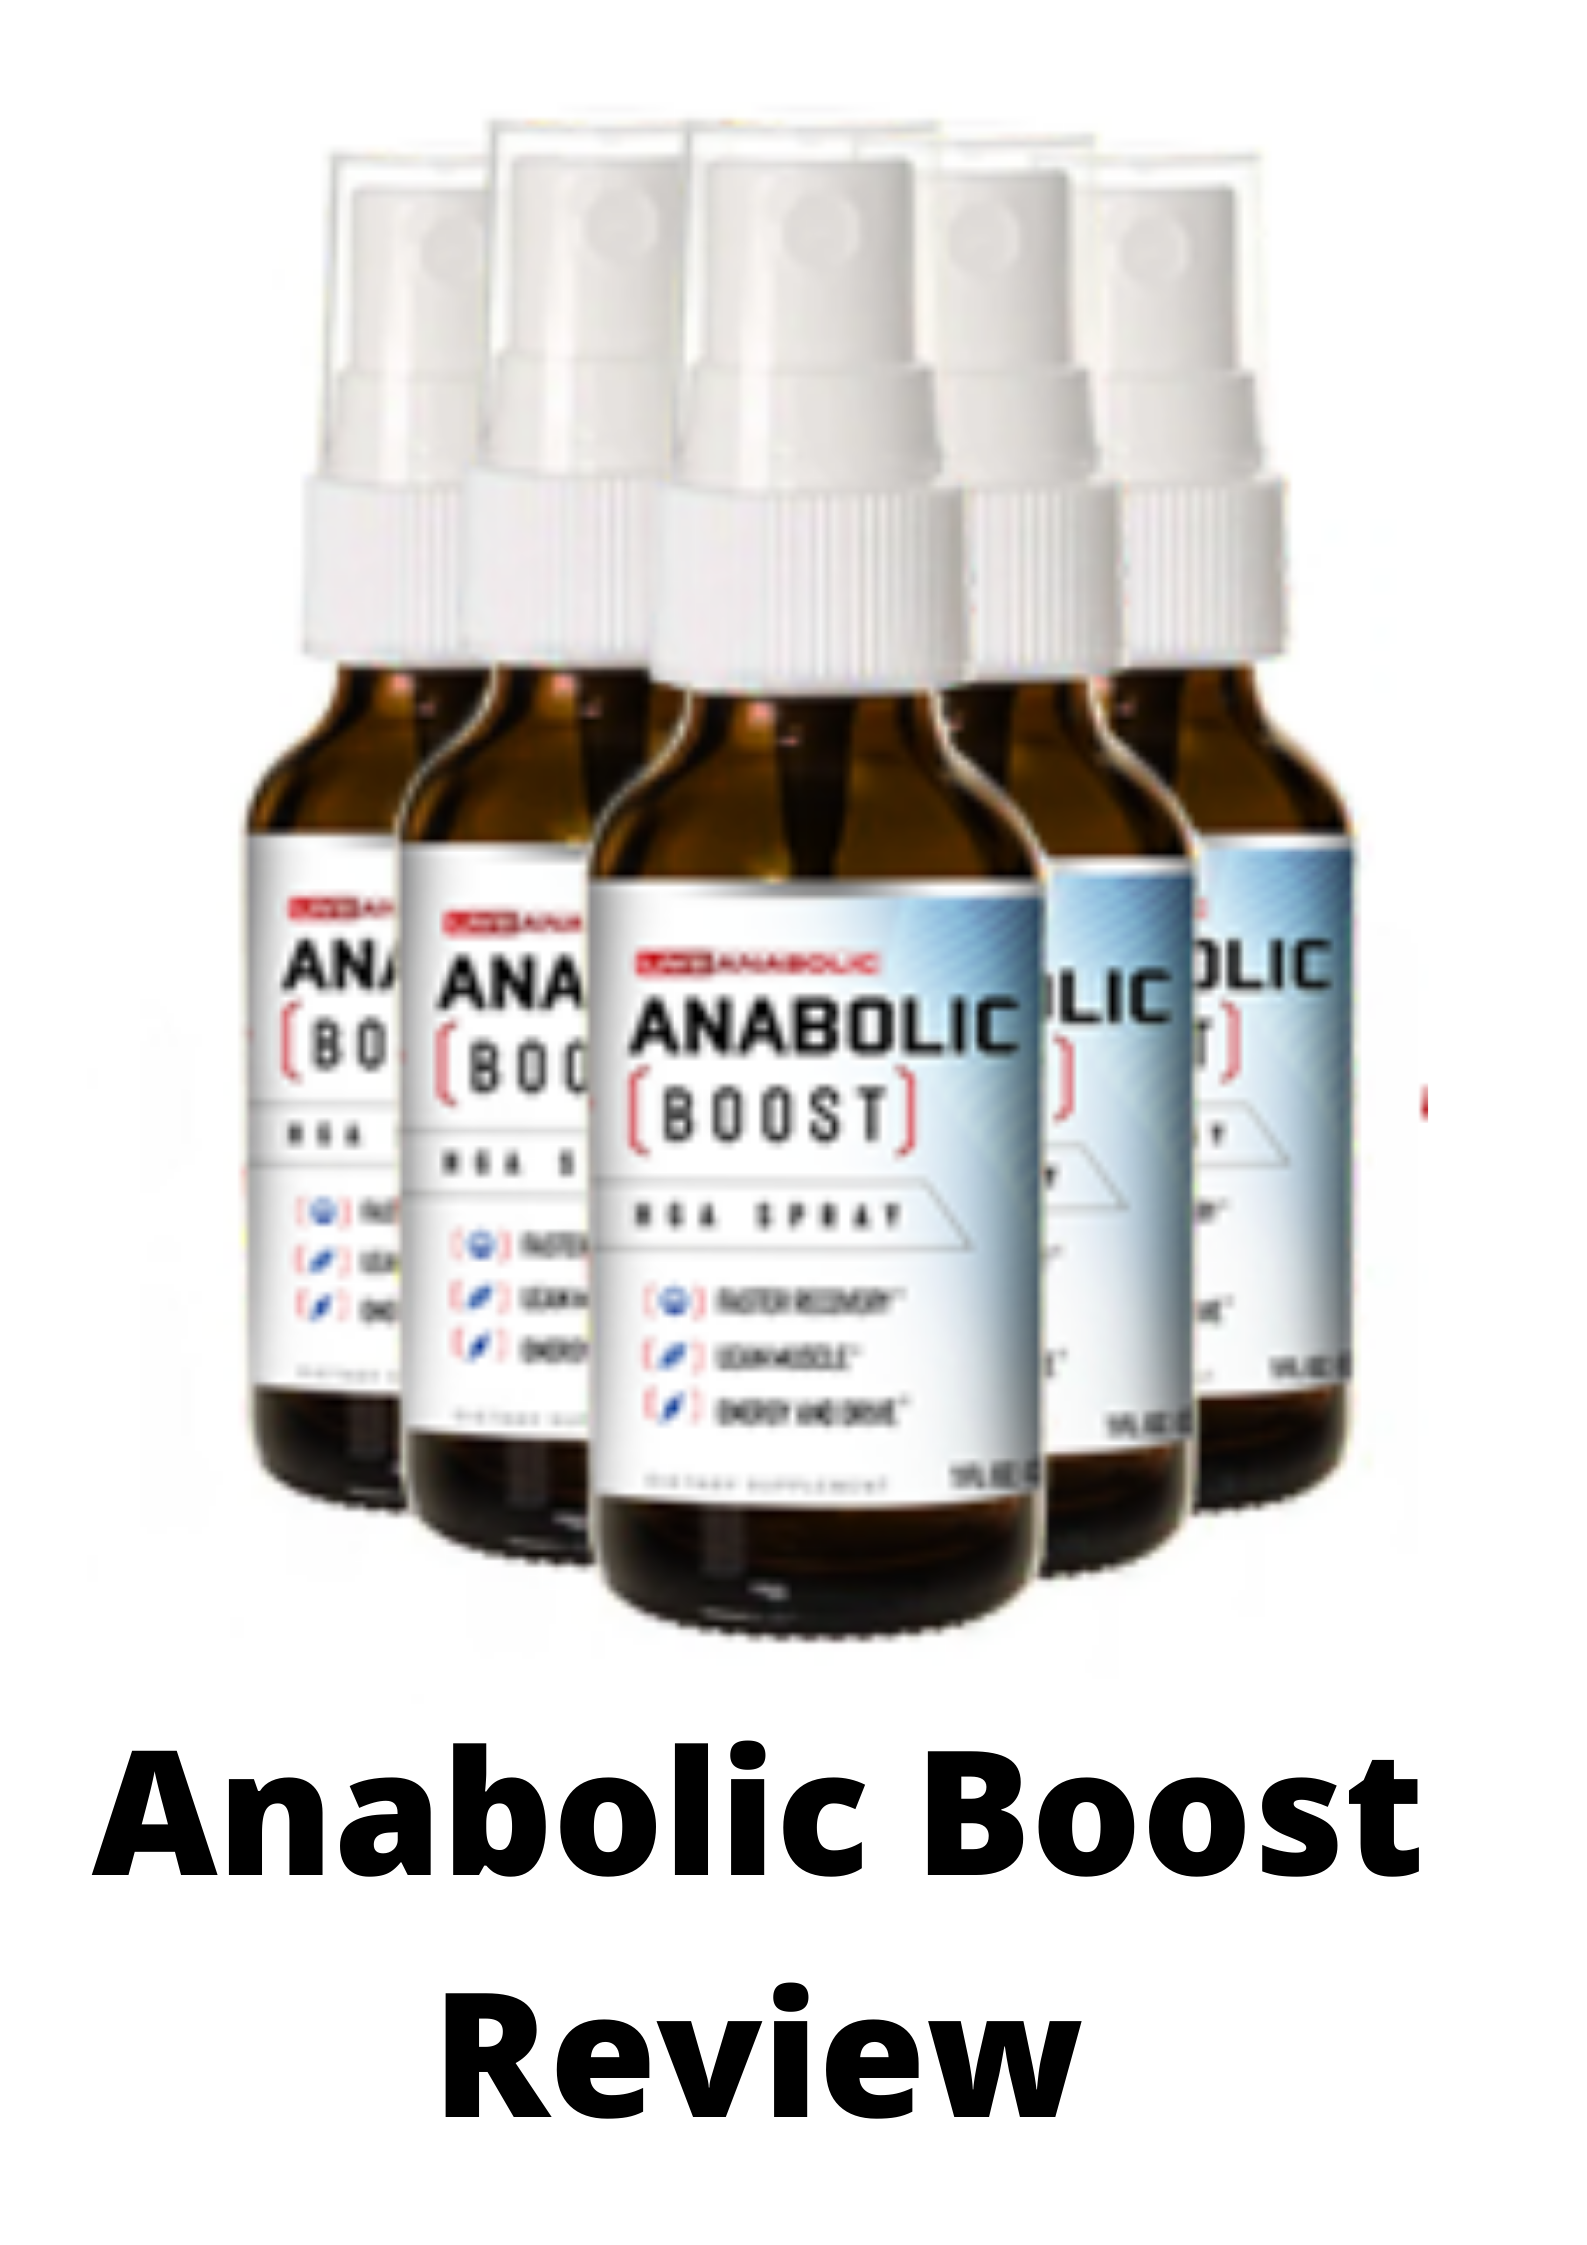 Anabolic Boost Reviews-Is this a scam?